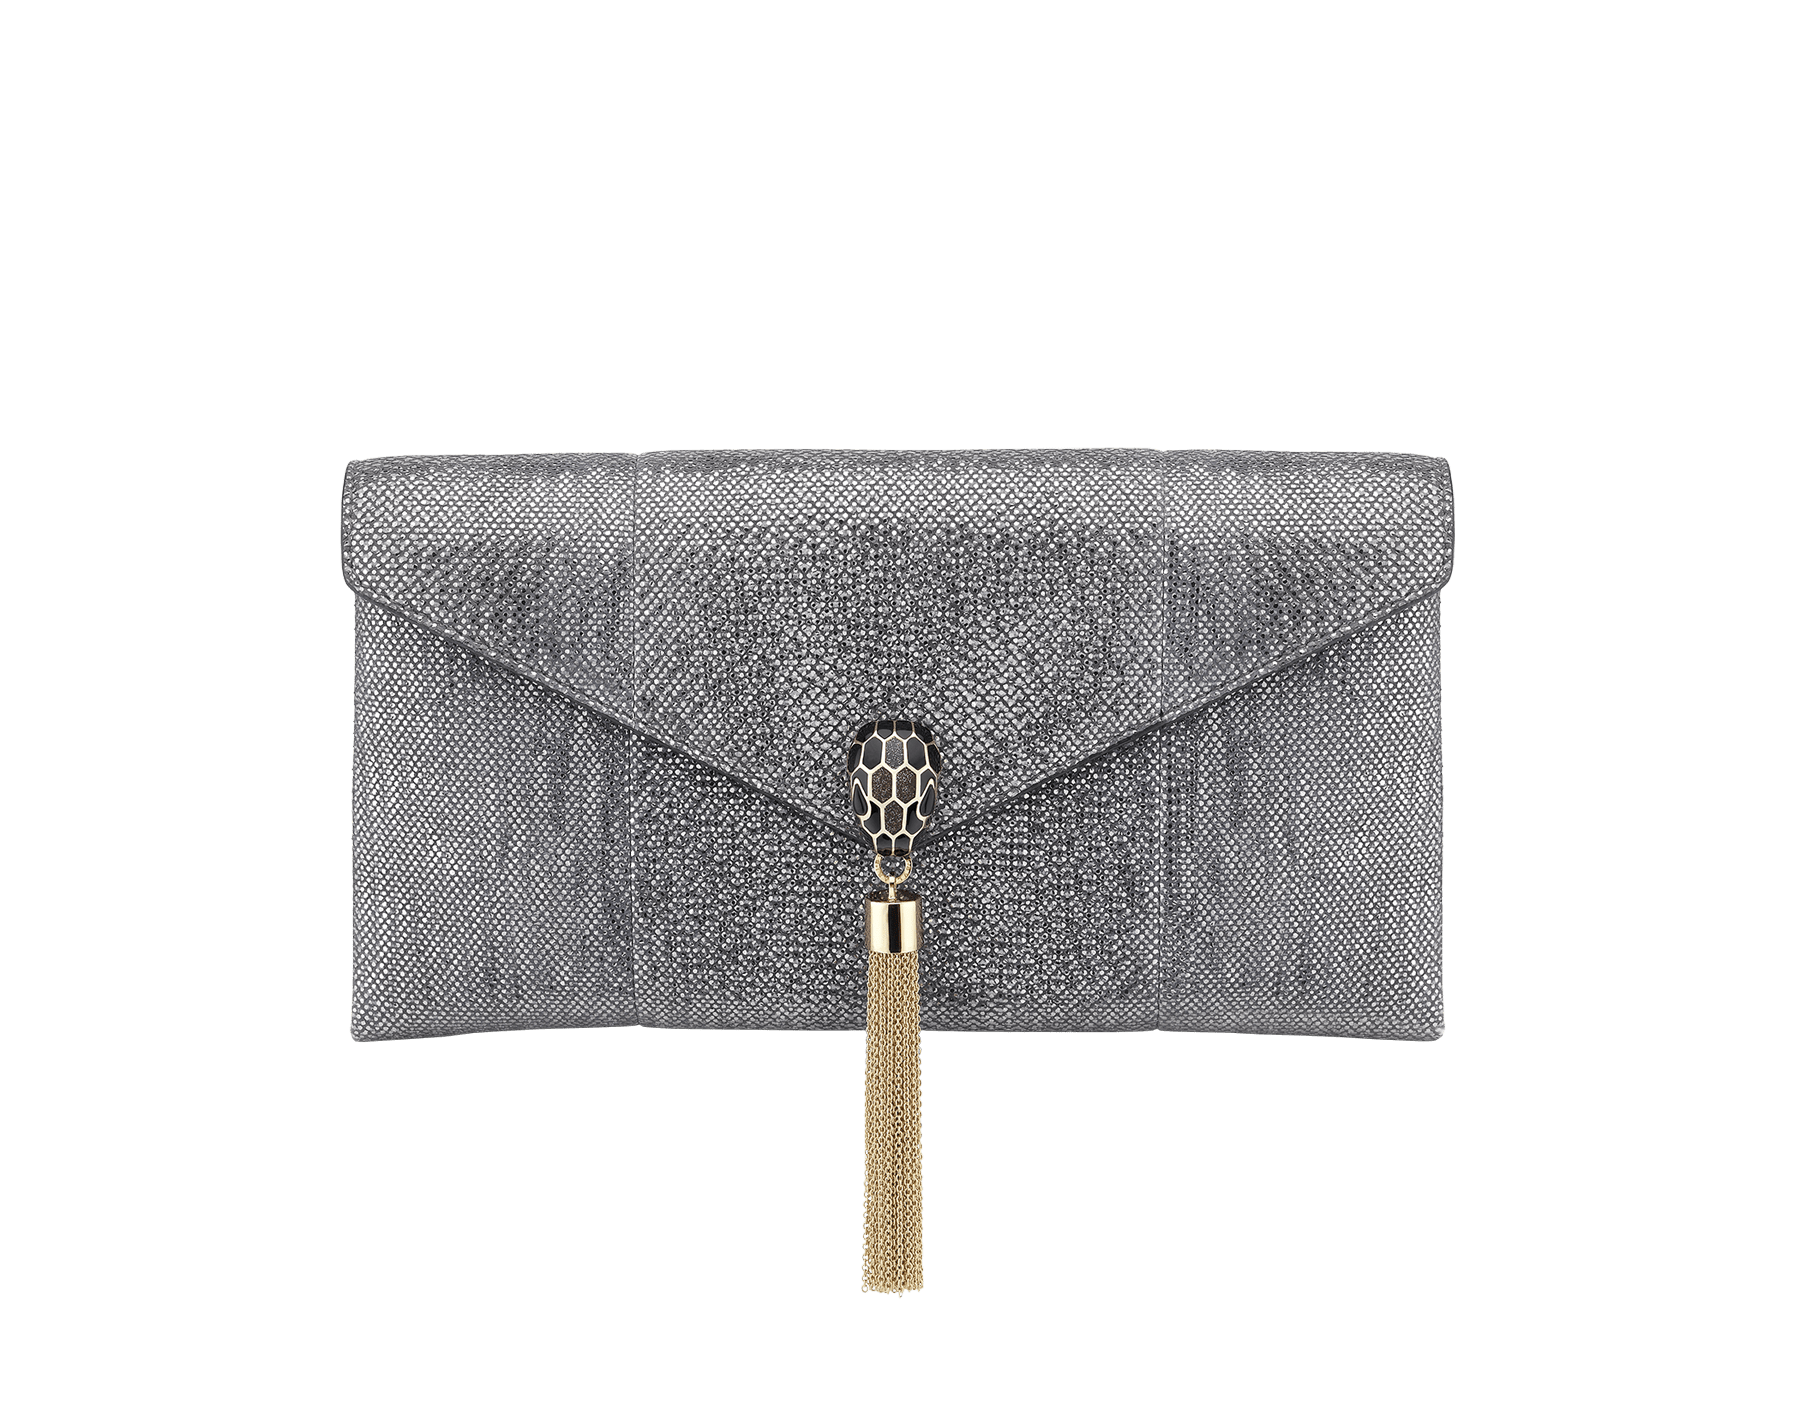 Serpenti evening clutch in charcoal diamond metallic karung skin. Snakehead stud closure with tassel in light gold plated brass decorated with black and glitter charcoal diamond enamel, and black onyx eyes. 288165 image 1